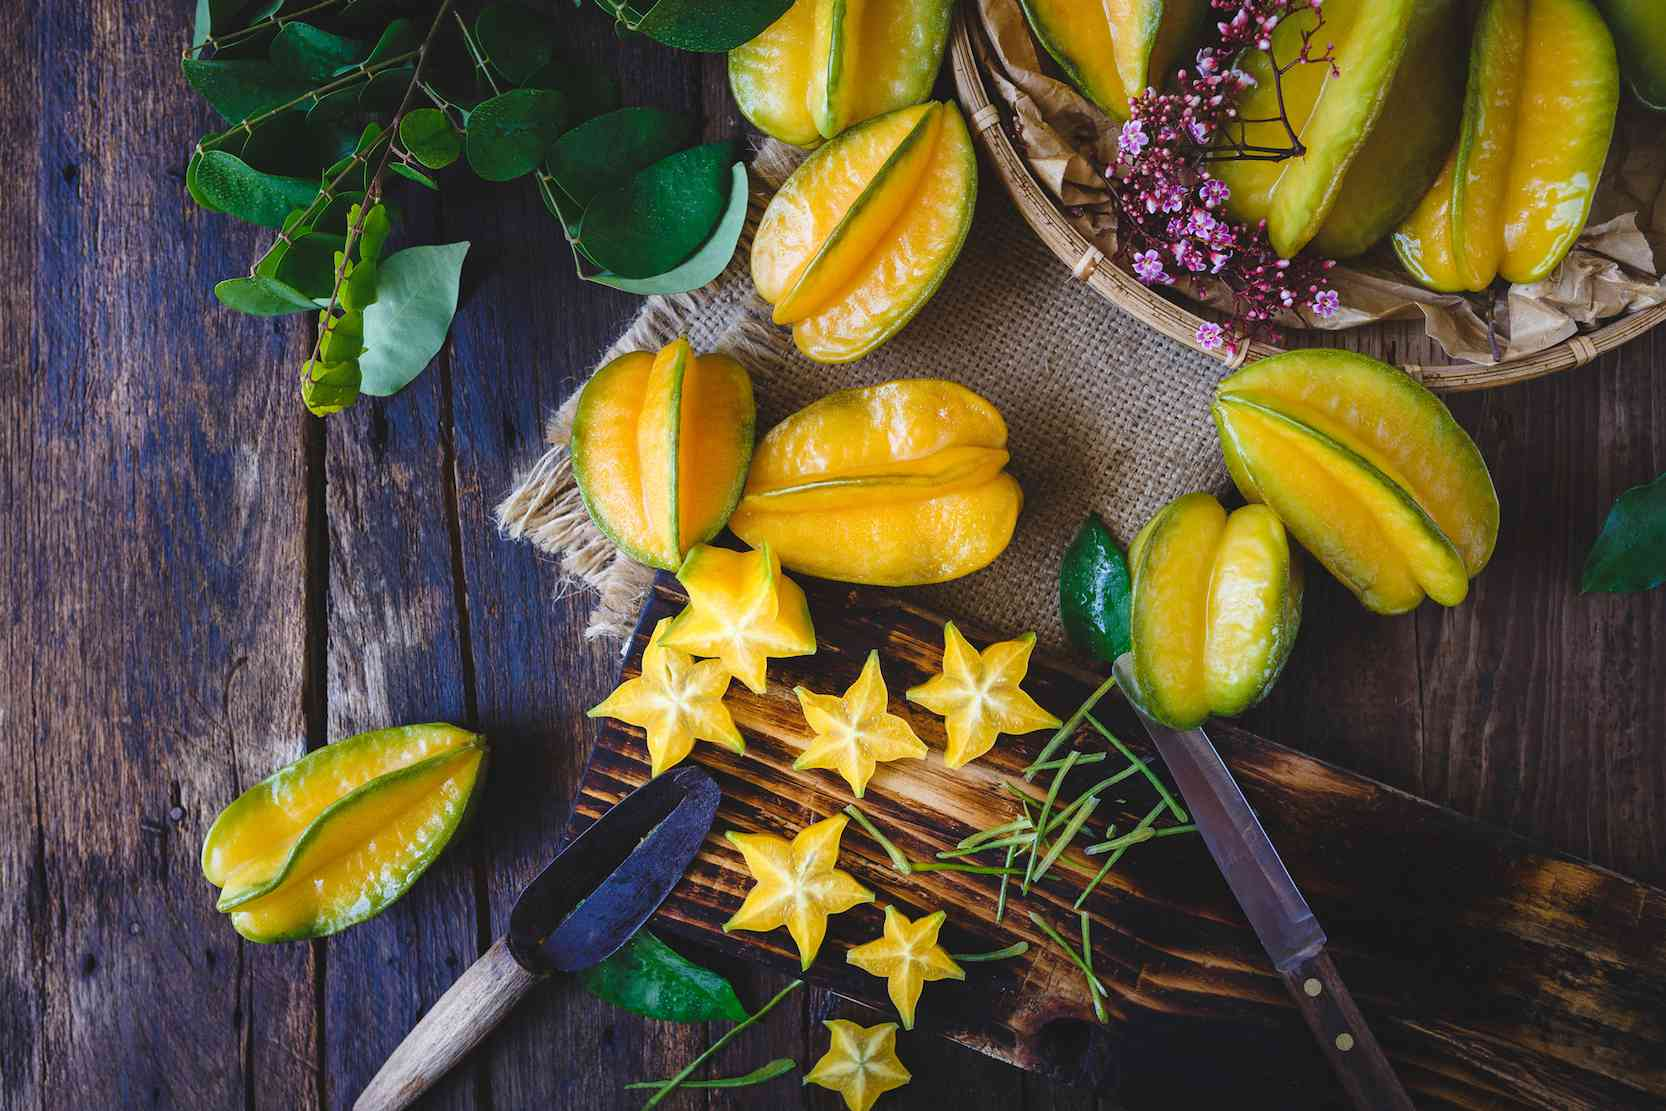 Starfruit sliced on plate with whole starfruits and blossoming branch with purple flowers